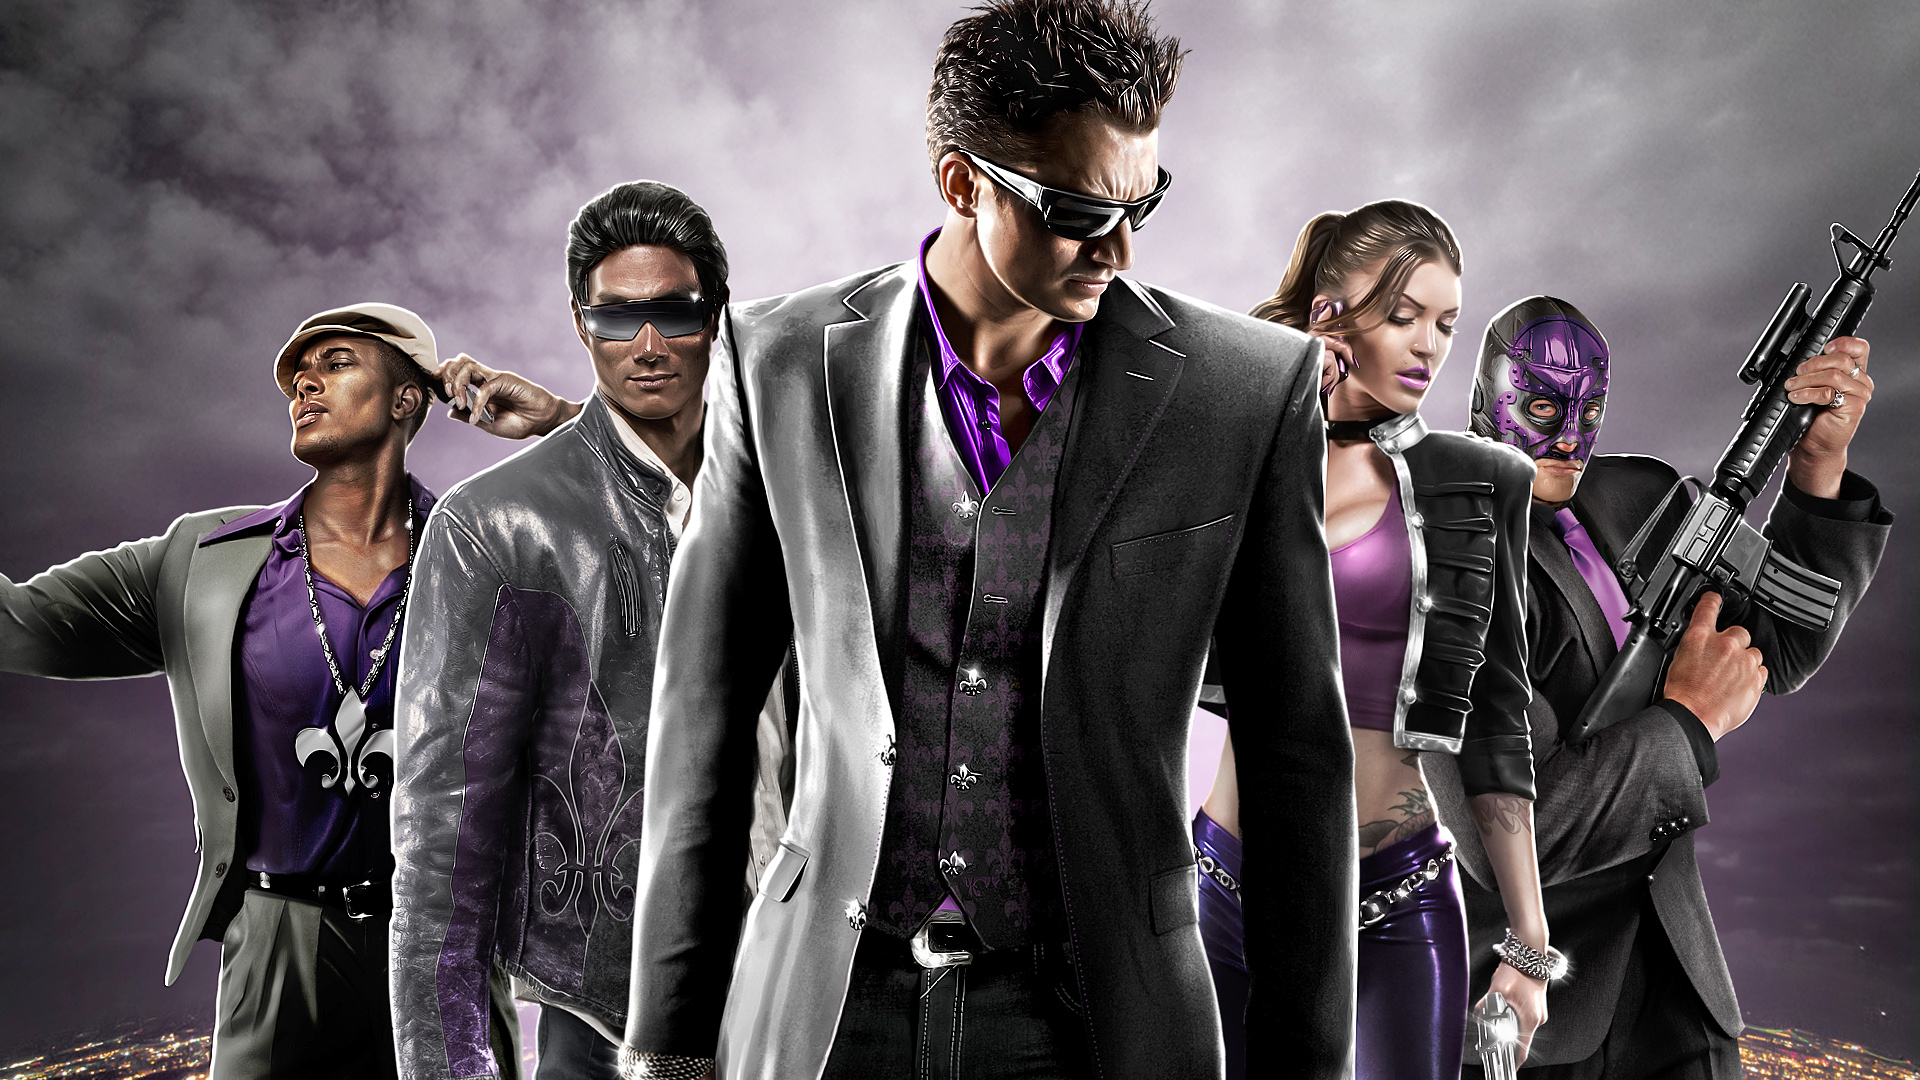 Wallpaper saints row: the third hd 2560x1600 hd picture, image.